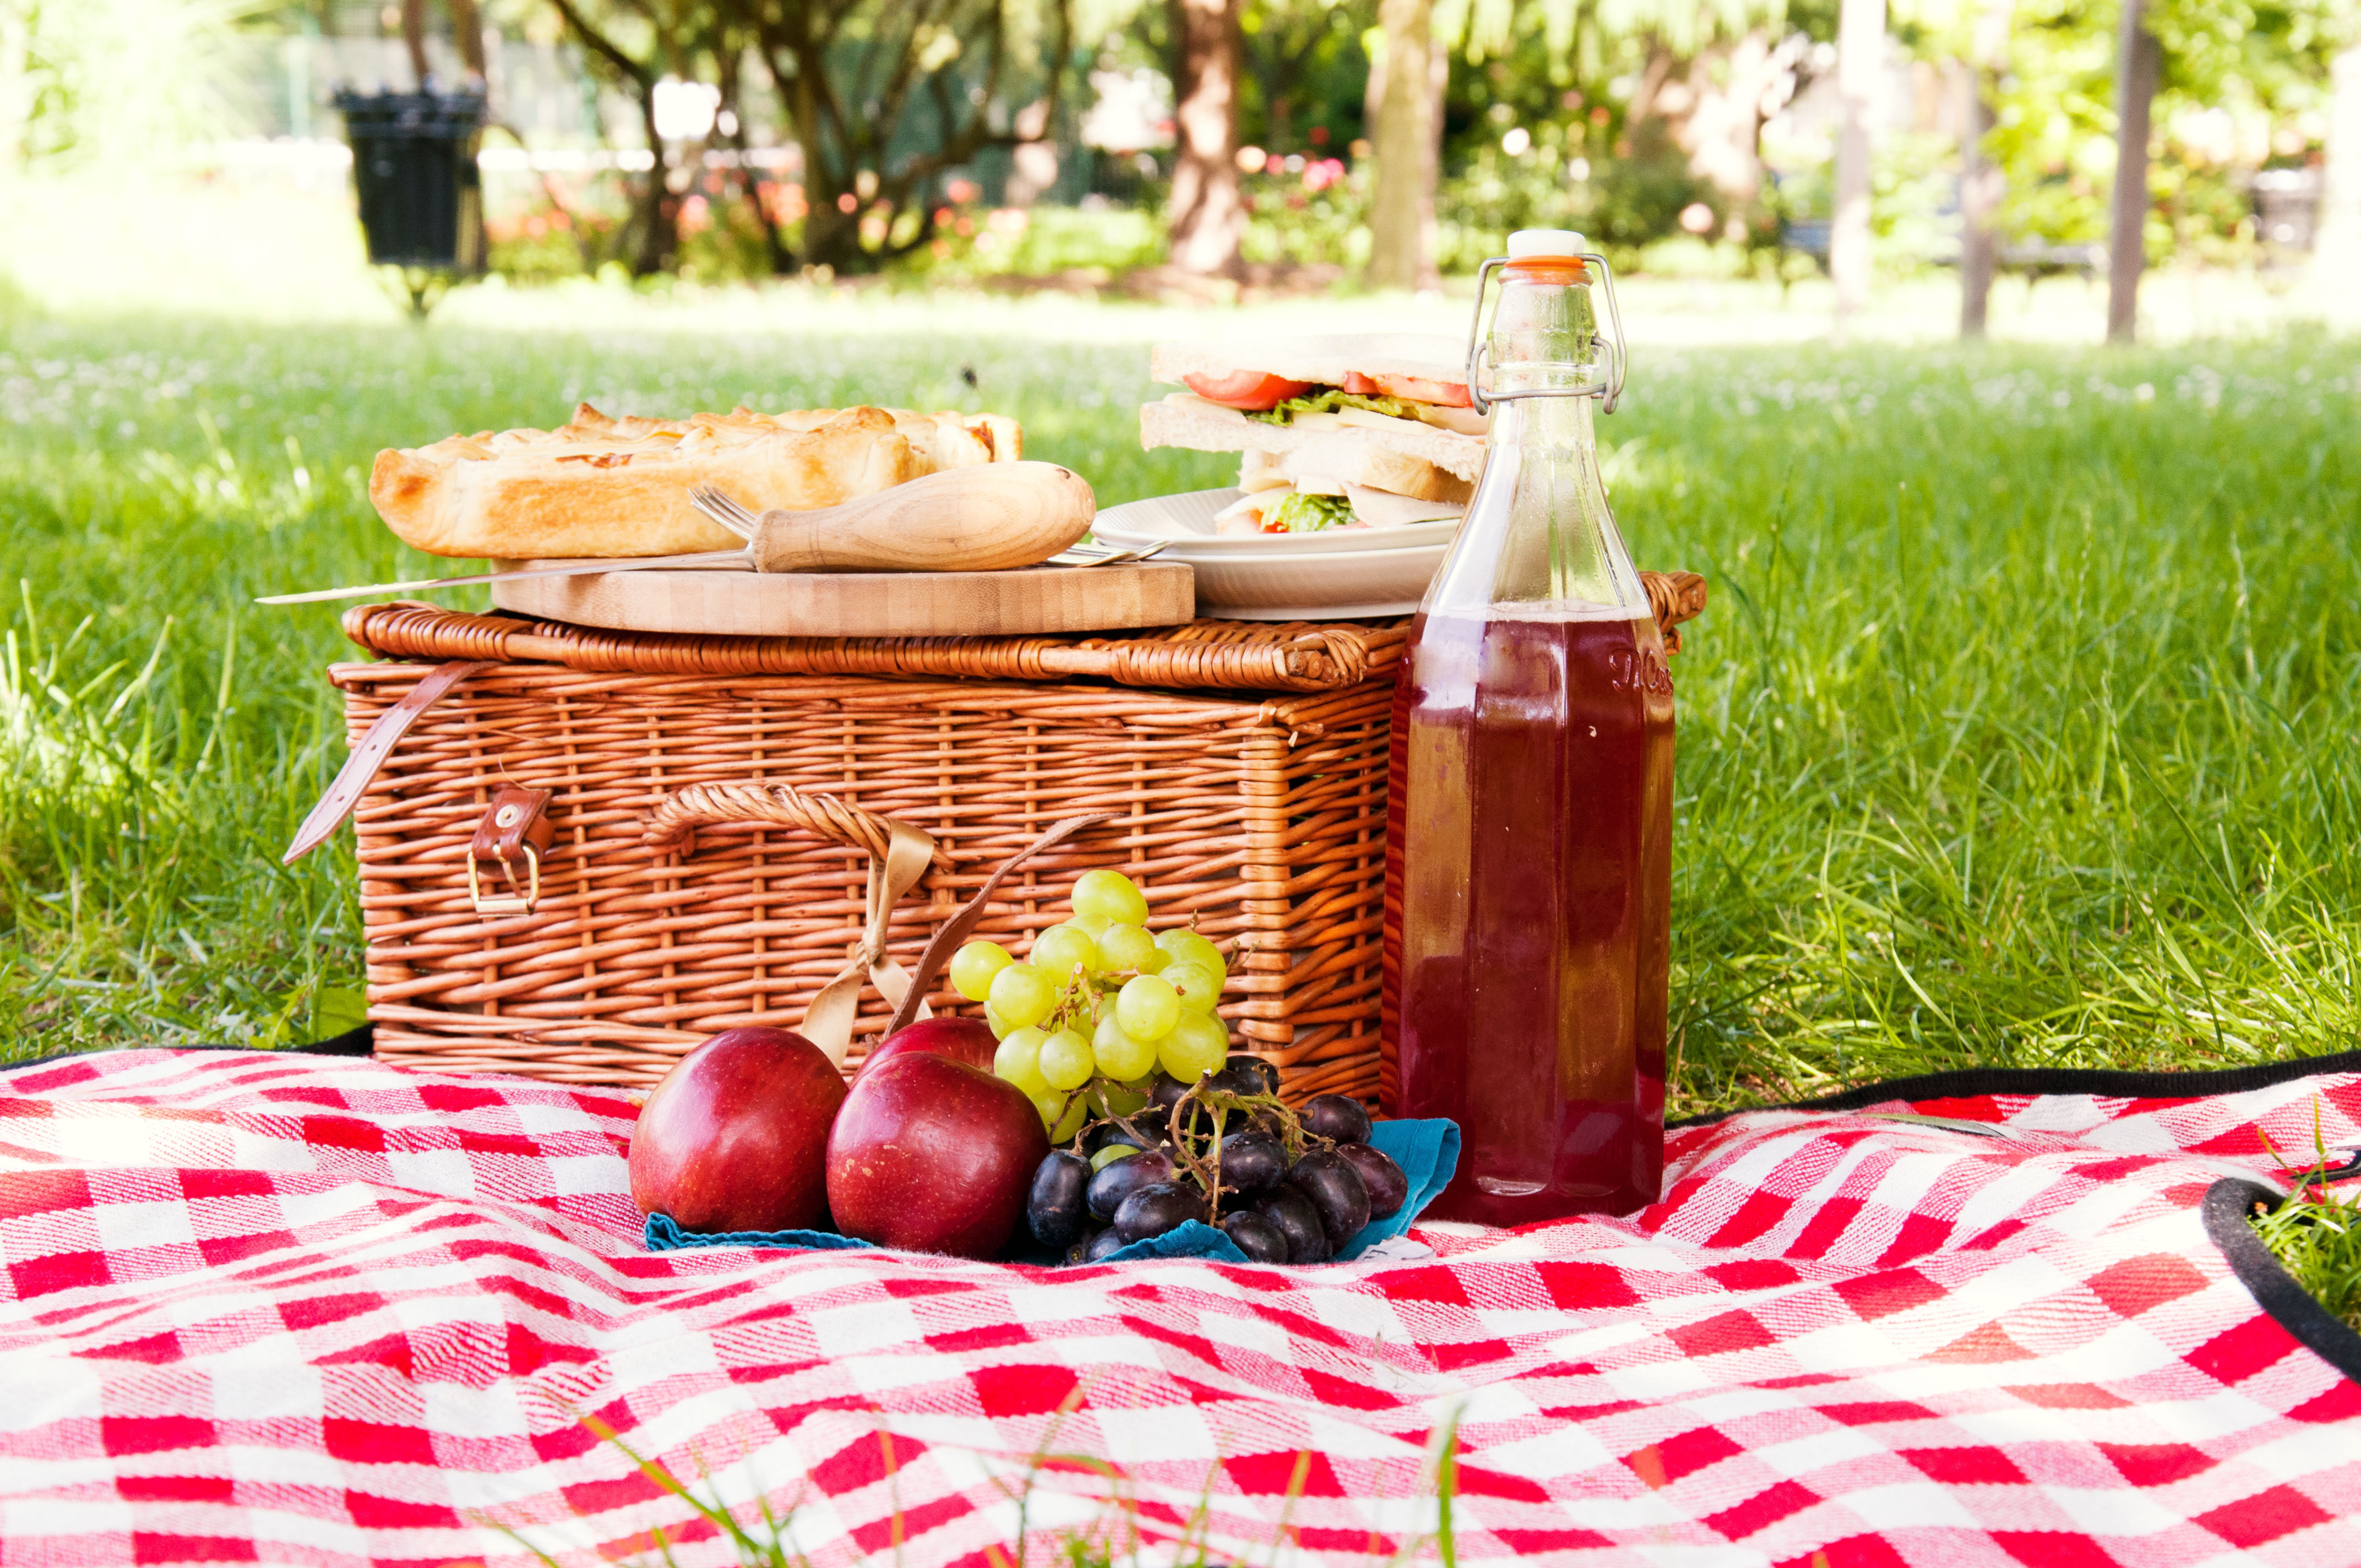 Bear Skin Picnic Blanket Content Gallery Extravagant